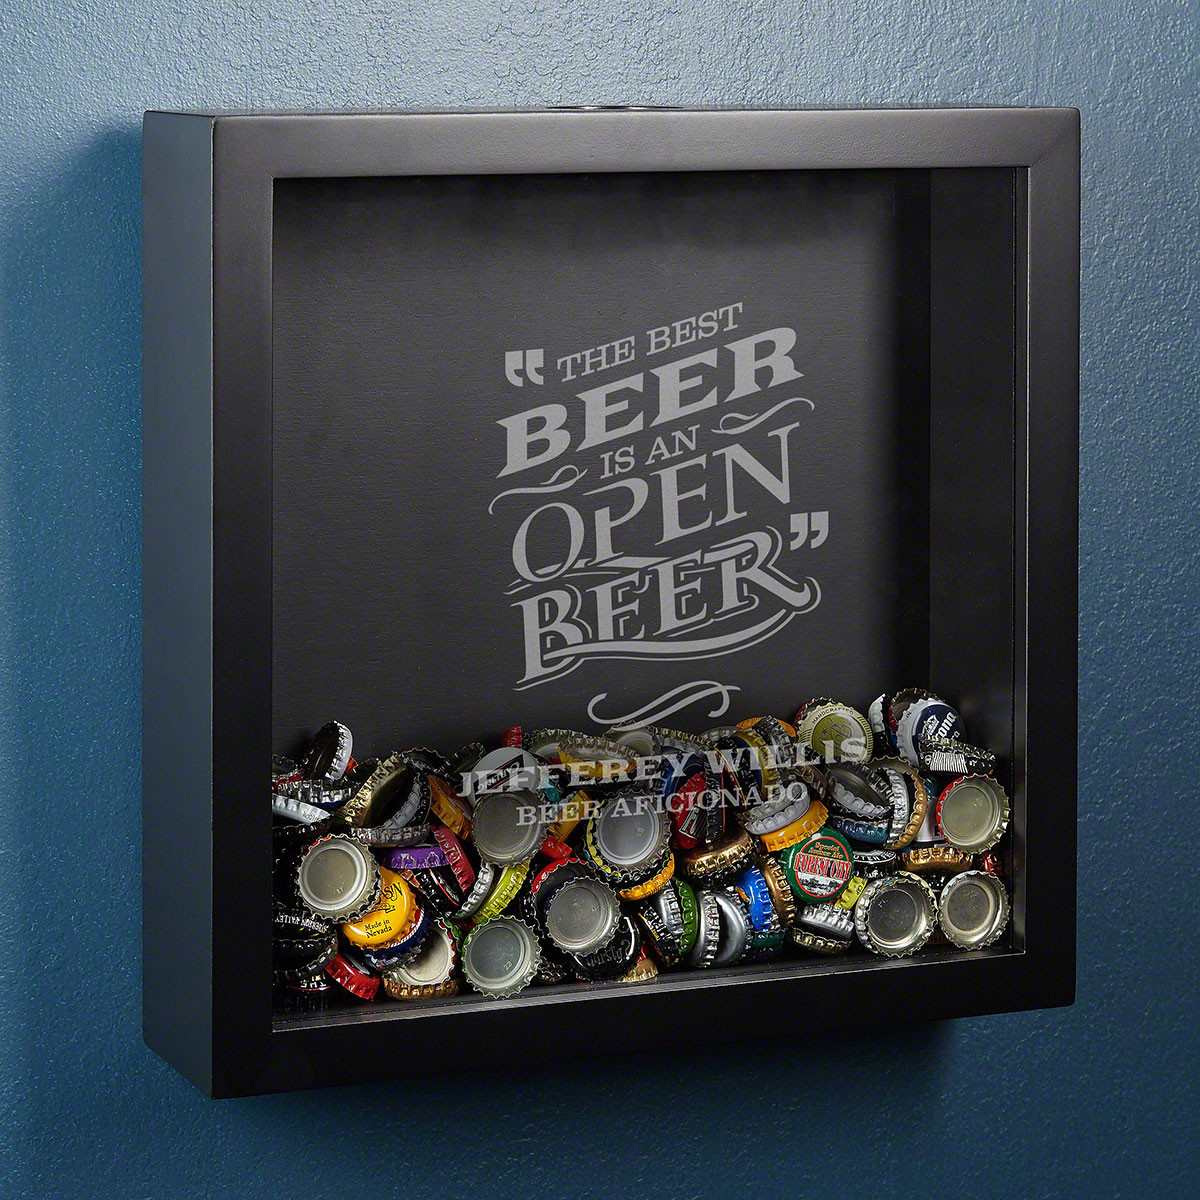 These sleek black shadow boxes hold all of your beer caps while encouraging you to keep the beers flowing to fill it up with caps. Excellent gifts for college students, these boxes are personalized with our Best Beer design, a name, and text that you choo #best